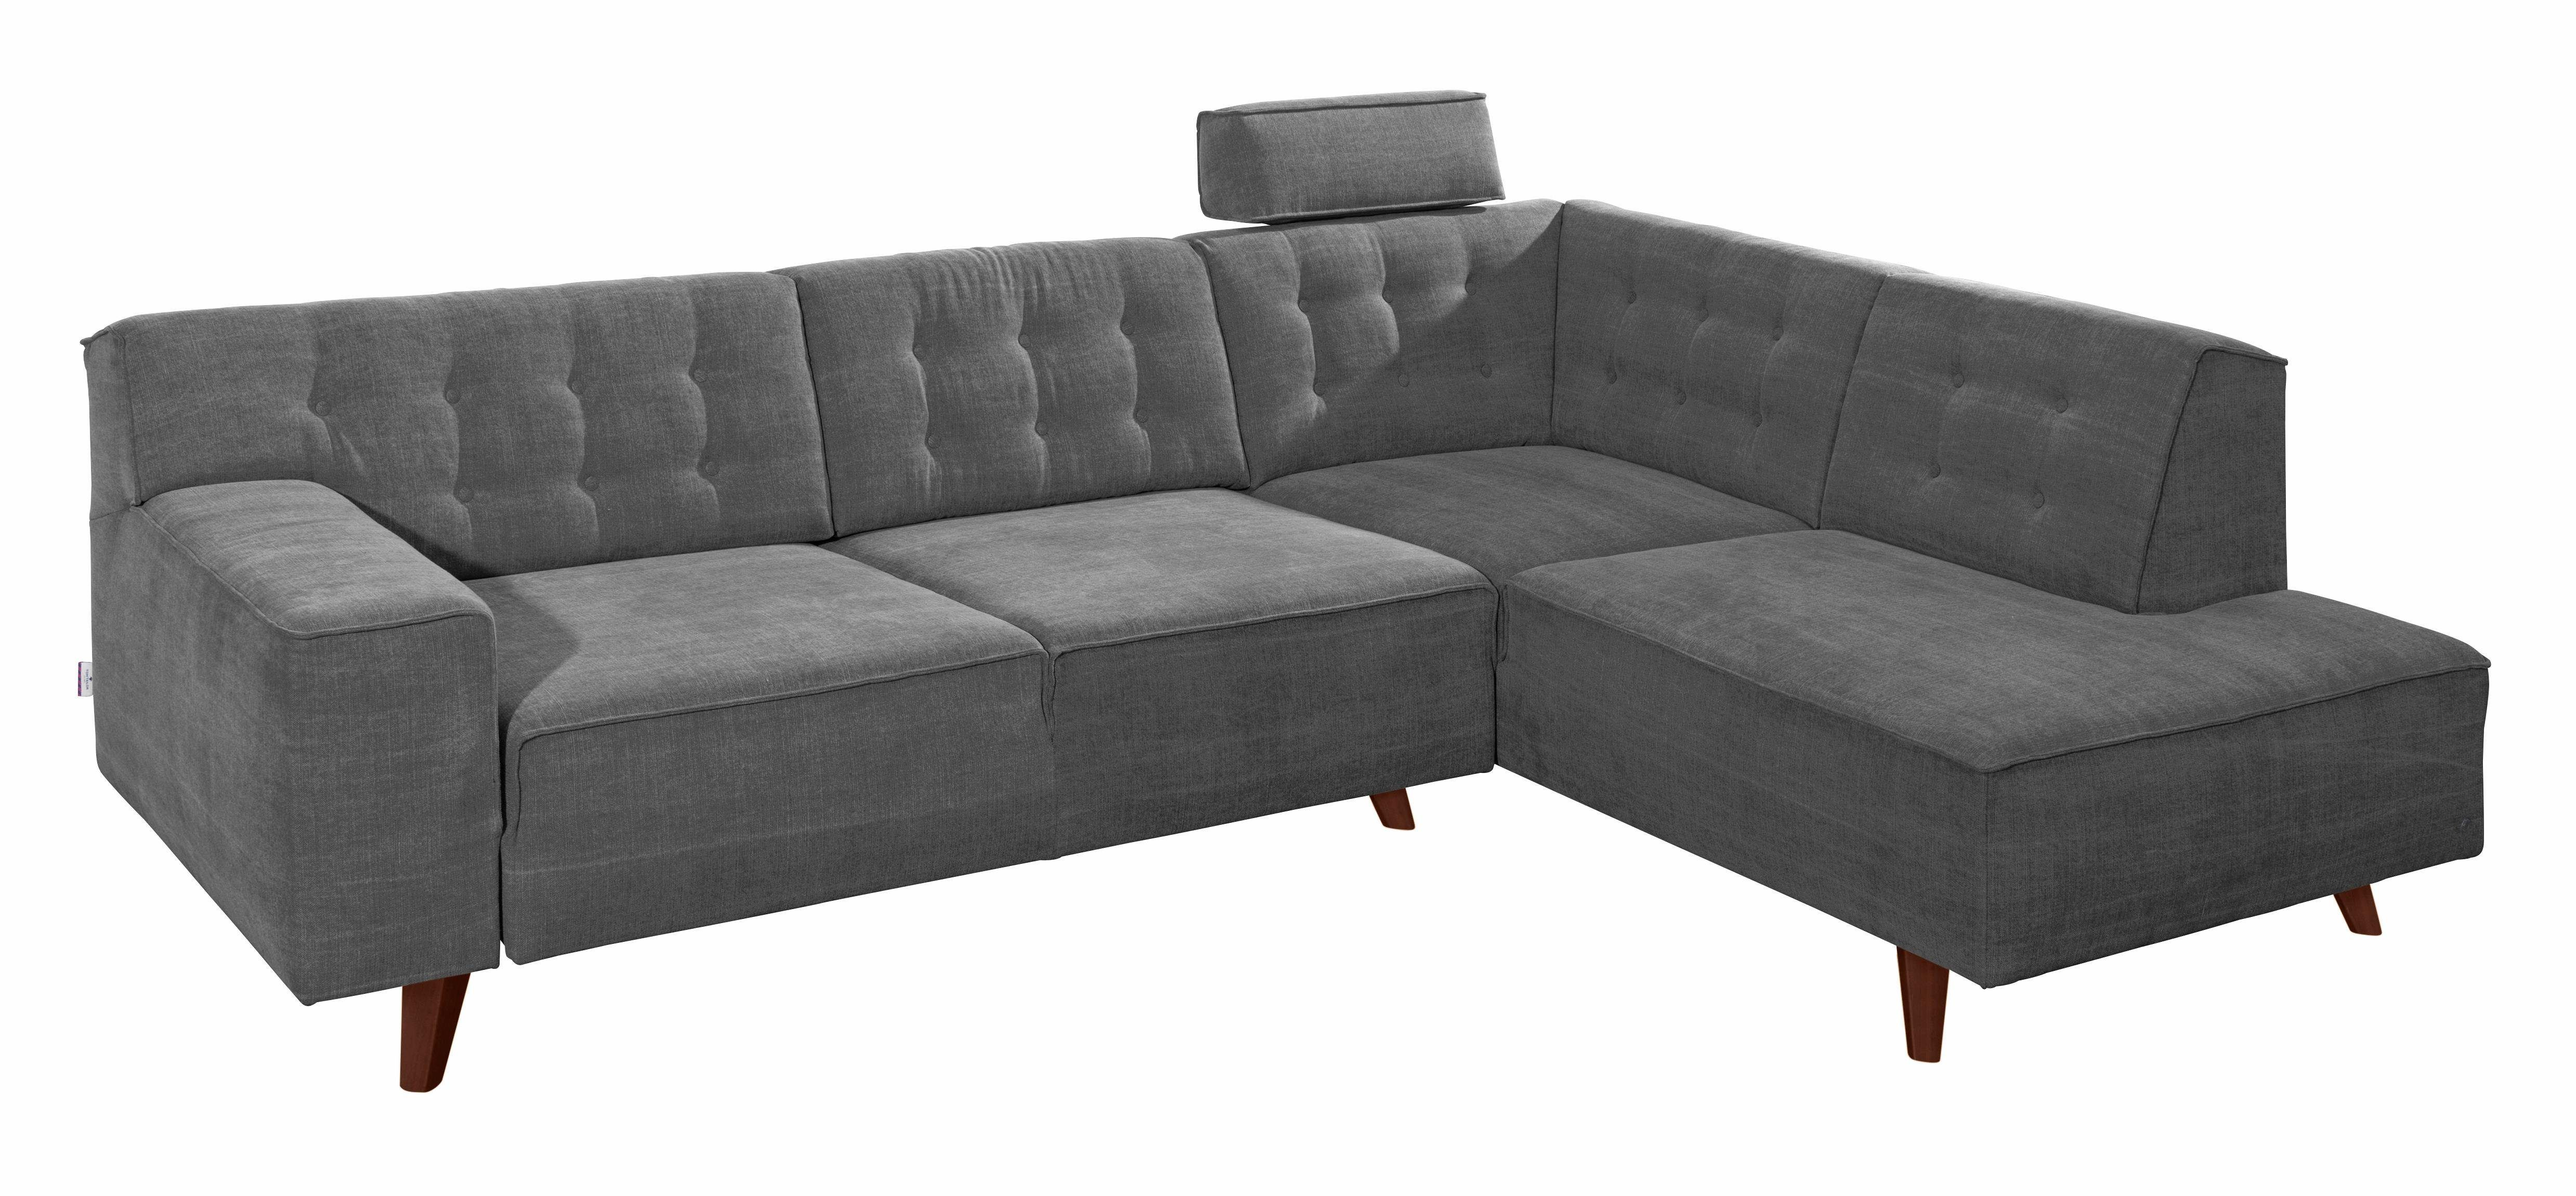 Pin By Ladendirekt On Sofas Couches Home Decor Furniture Couch